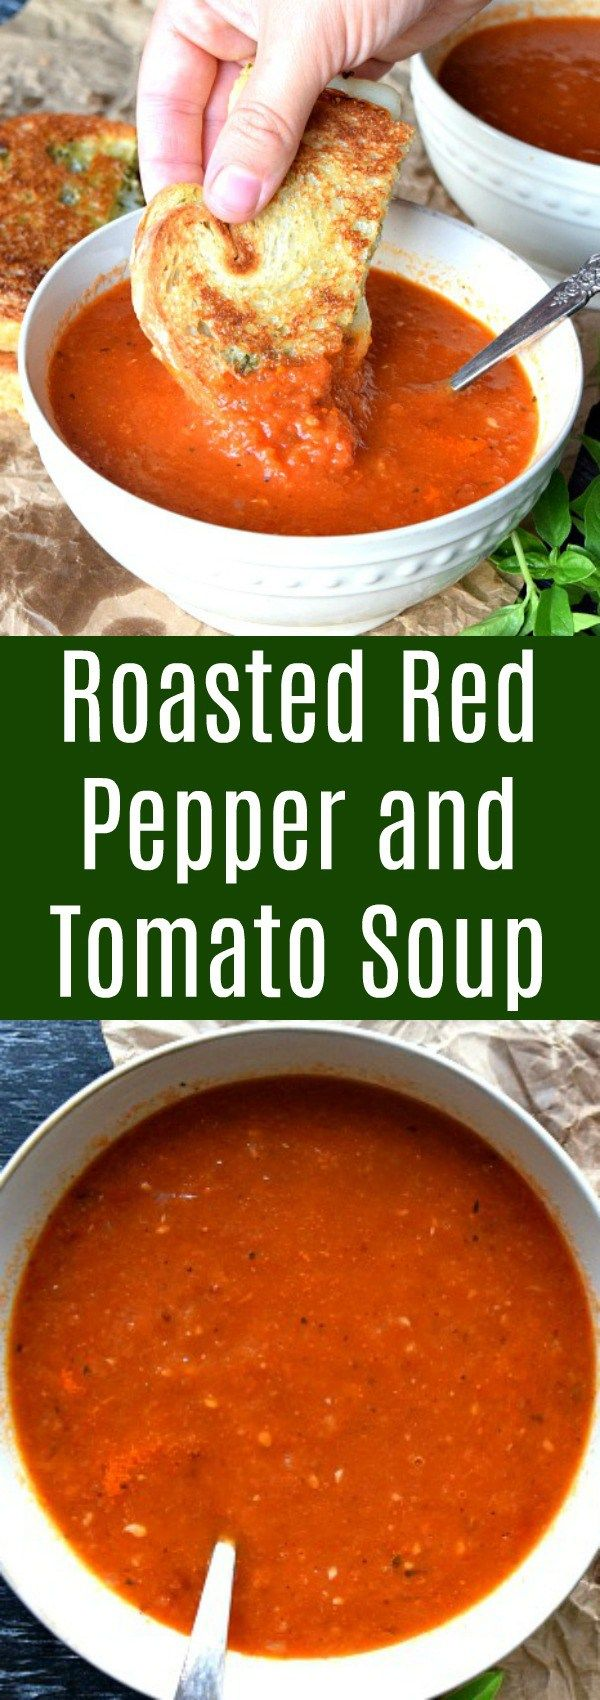 Roasted Red Pepper Tomato Soup Stuffed Peppers Roasted Pepper Soup Roasted Red Pepper Soup